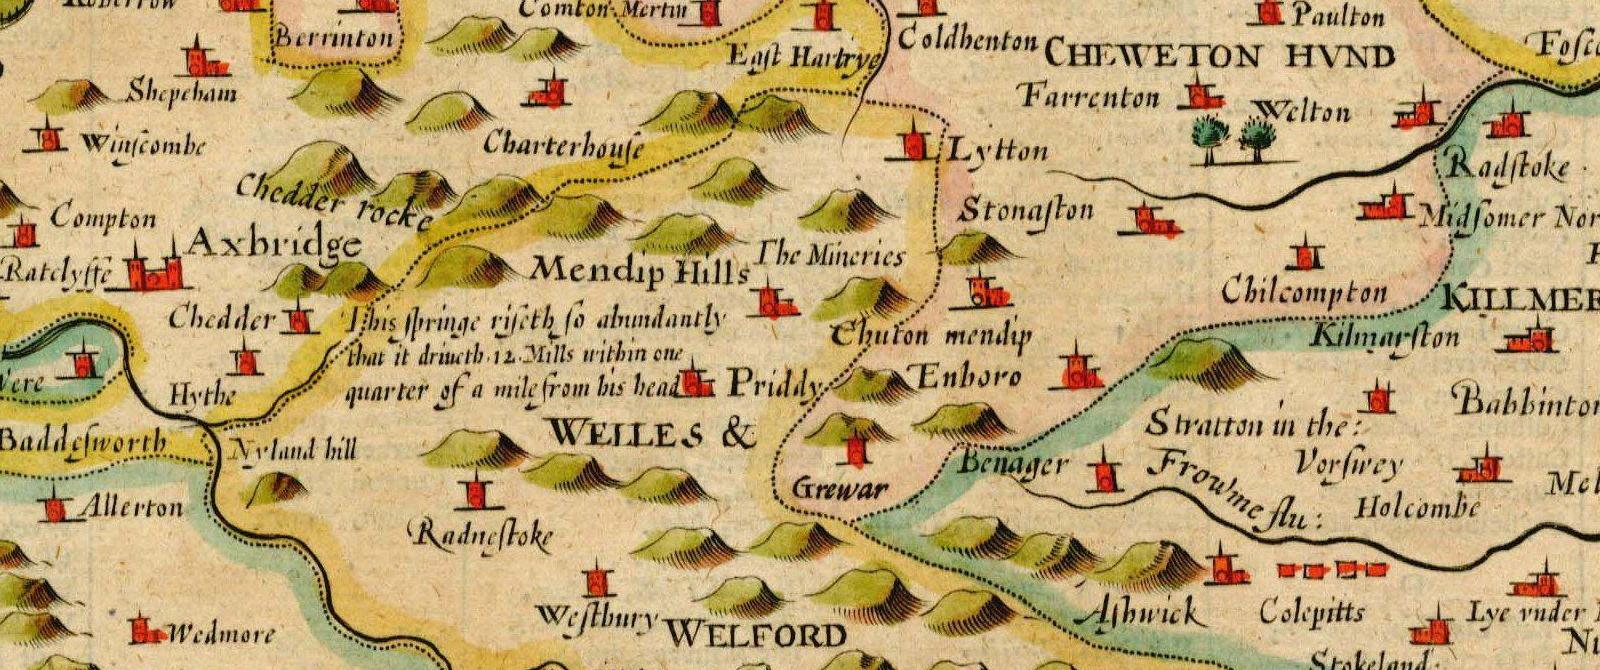 A colourful map of Somerset showing hills, towns and other features